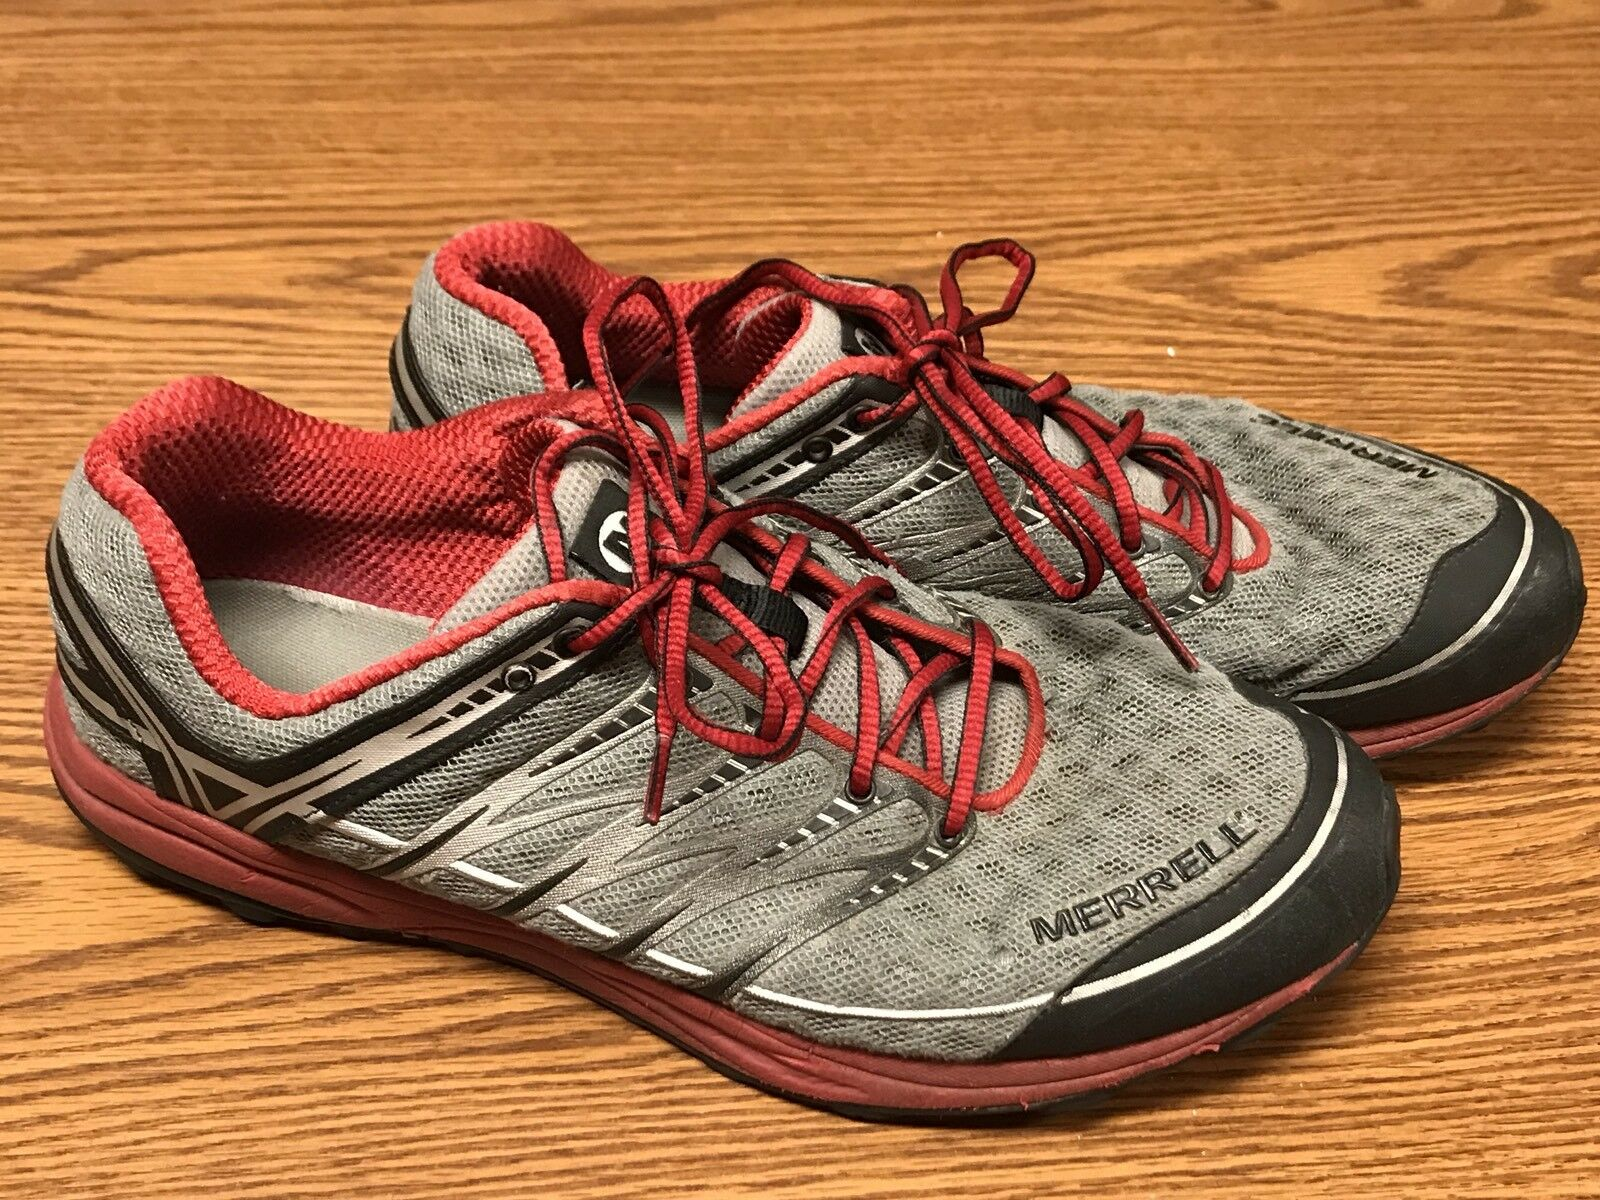 8b3a35e2deedb Merrell Merrell Merrell Mix Master Move Crimson Red Gray Trail Hiking Running  Shoes Men s Sz 12 78aeb9